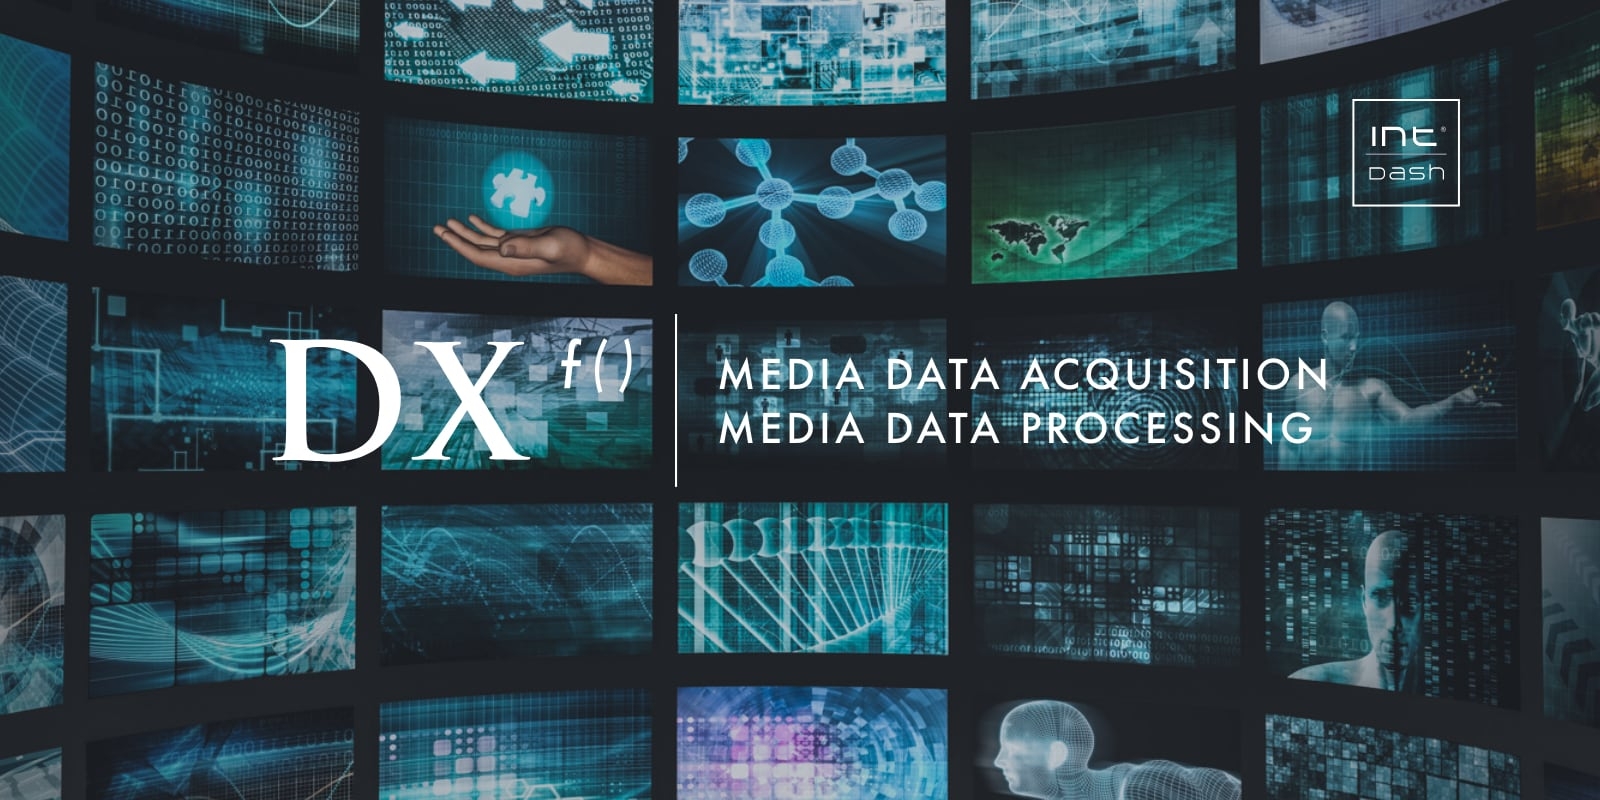 Media Data Acquisition/Media Data Processing